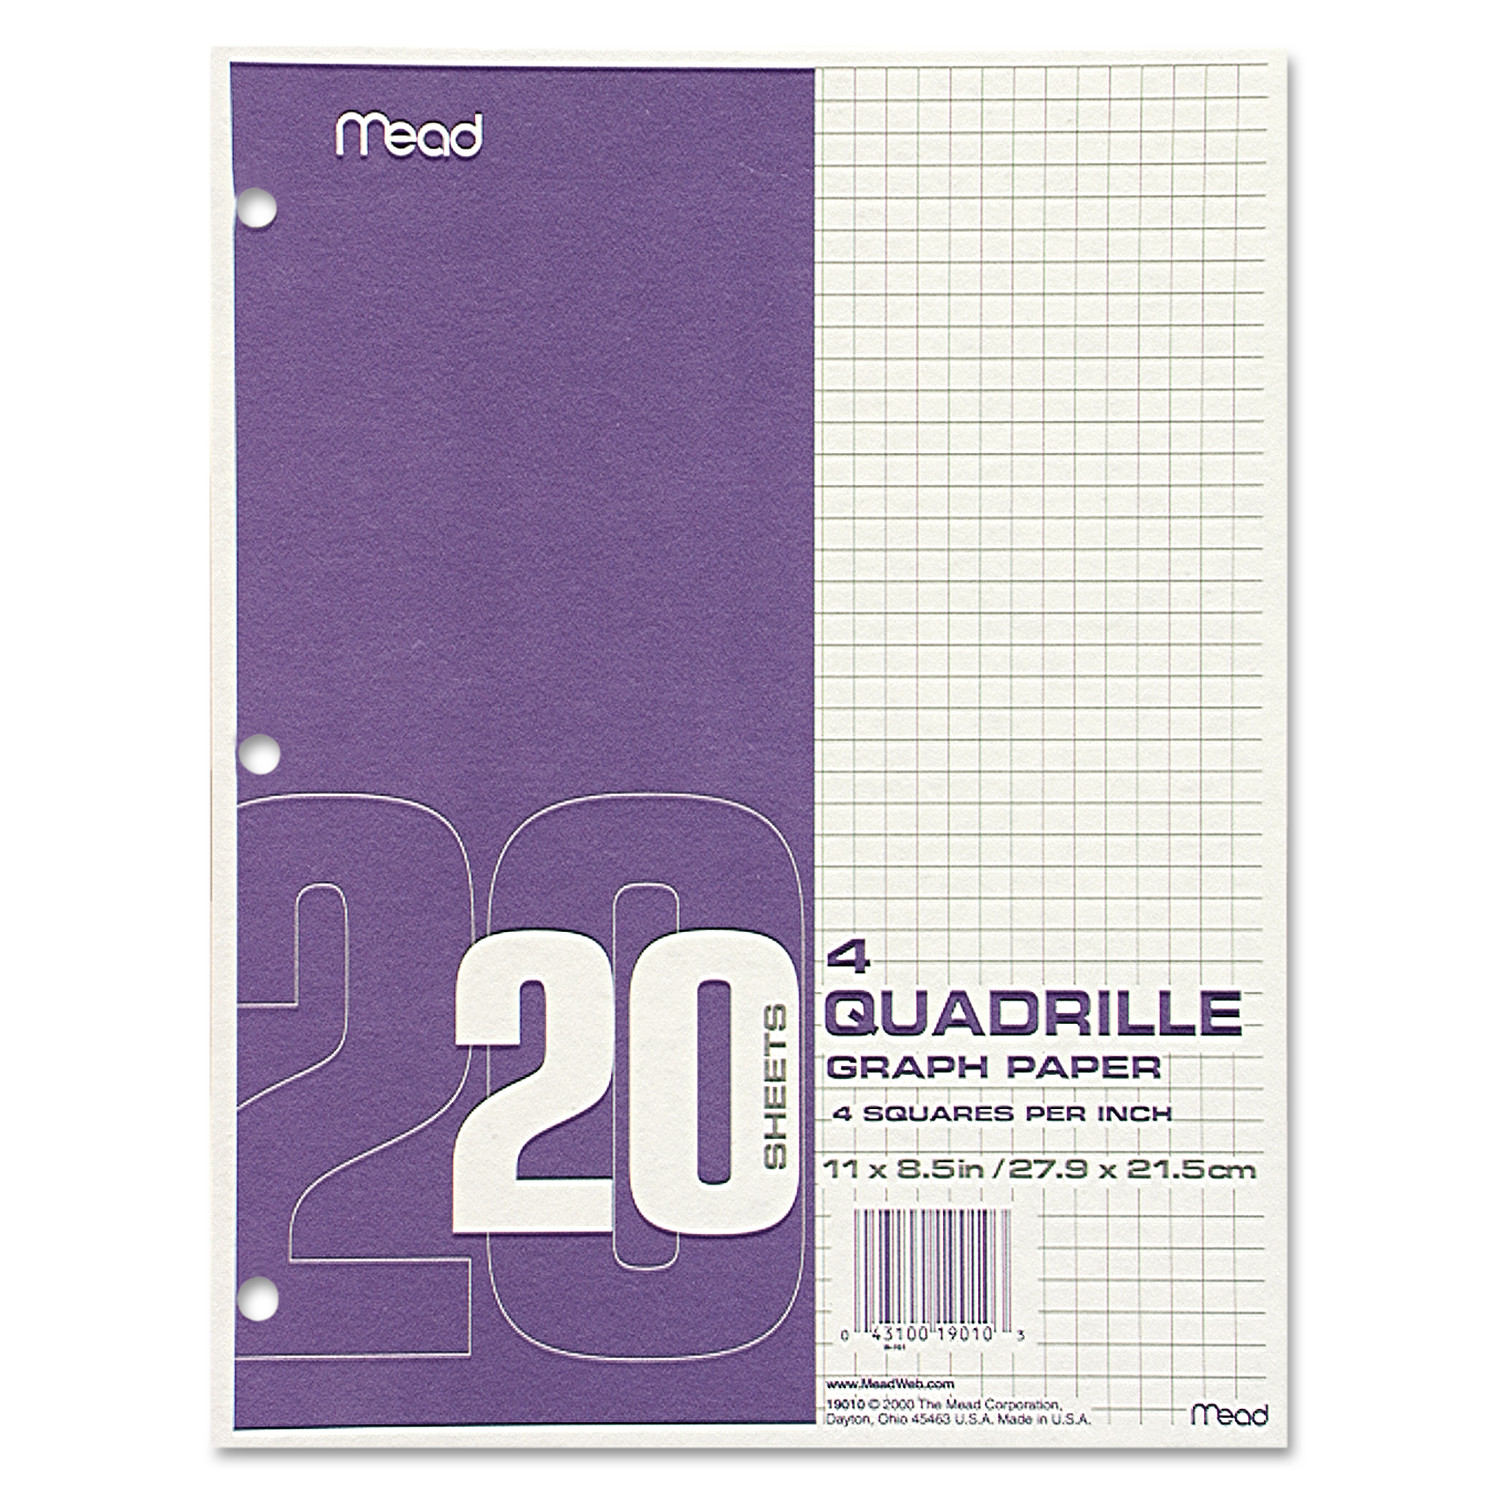 Mead Graph Paper Quadrille  SqIn   X  White